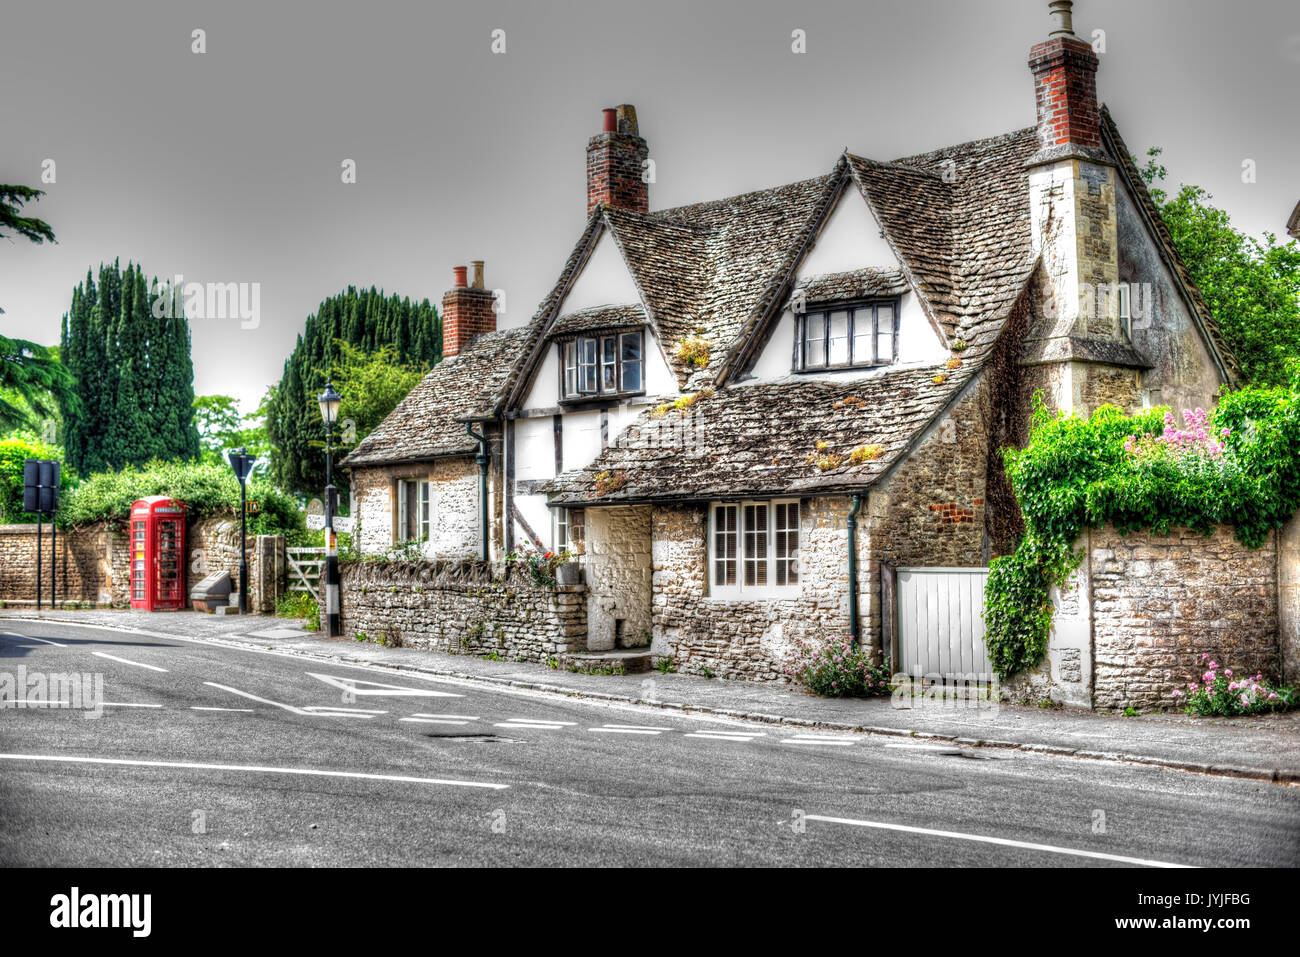 A traditional English roadside cottage at Lacock, Wiltshire, (processed as an hdr image). - Stock Image